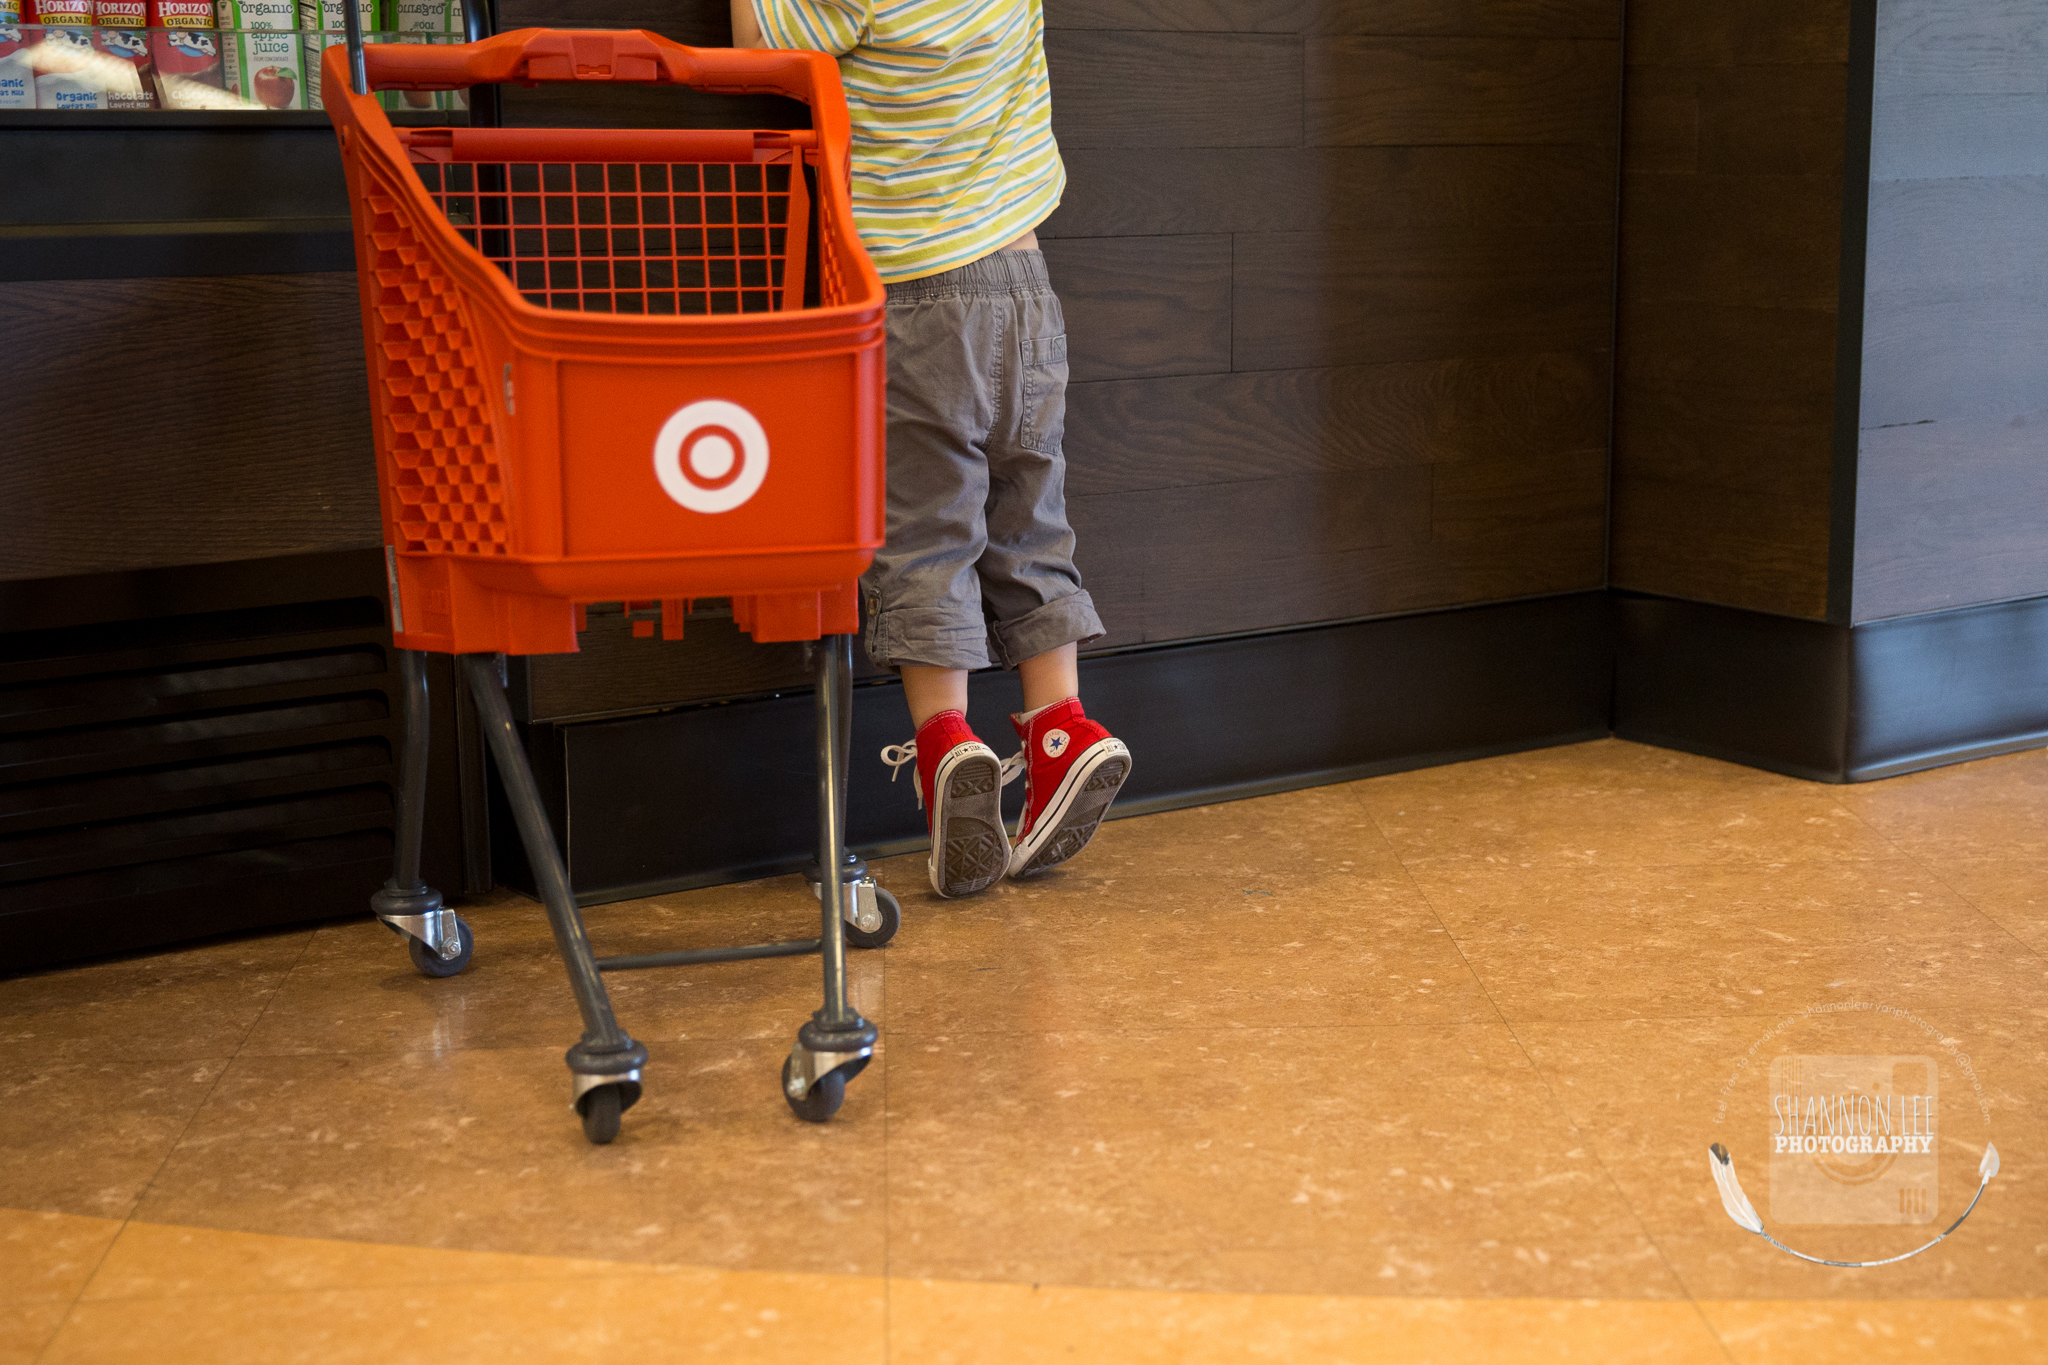 target-little-red-shopping-cart-shannon-lee-photography-long-island-New-York-0978.jpg